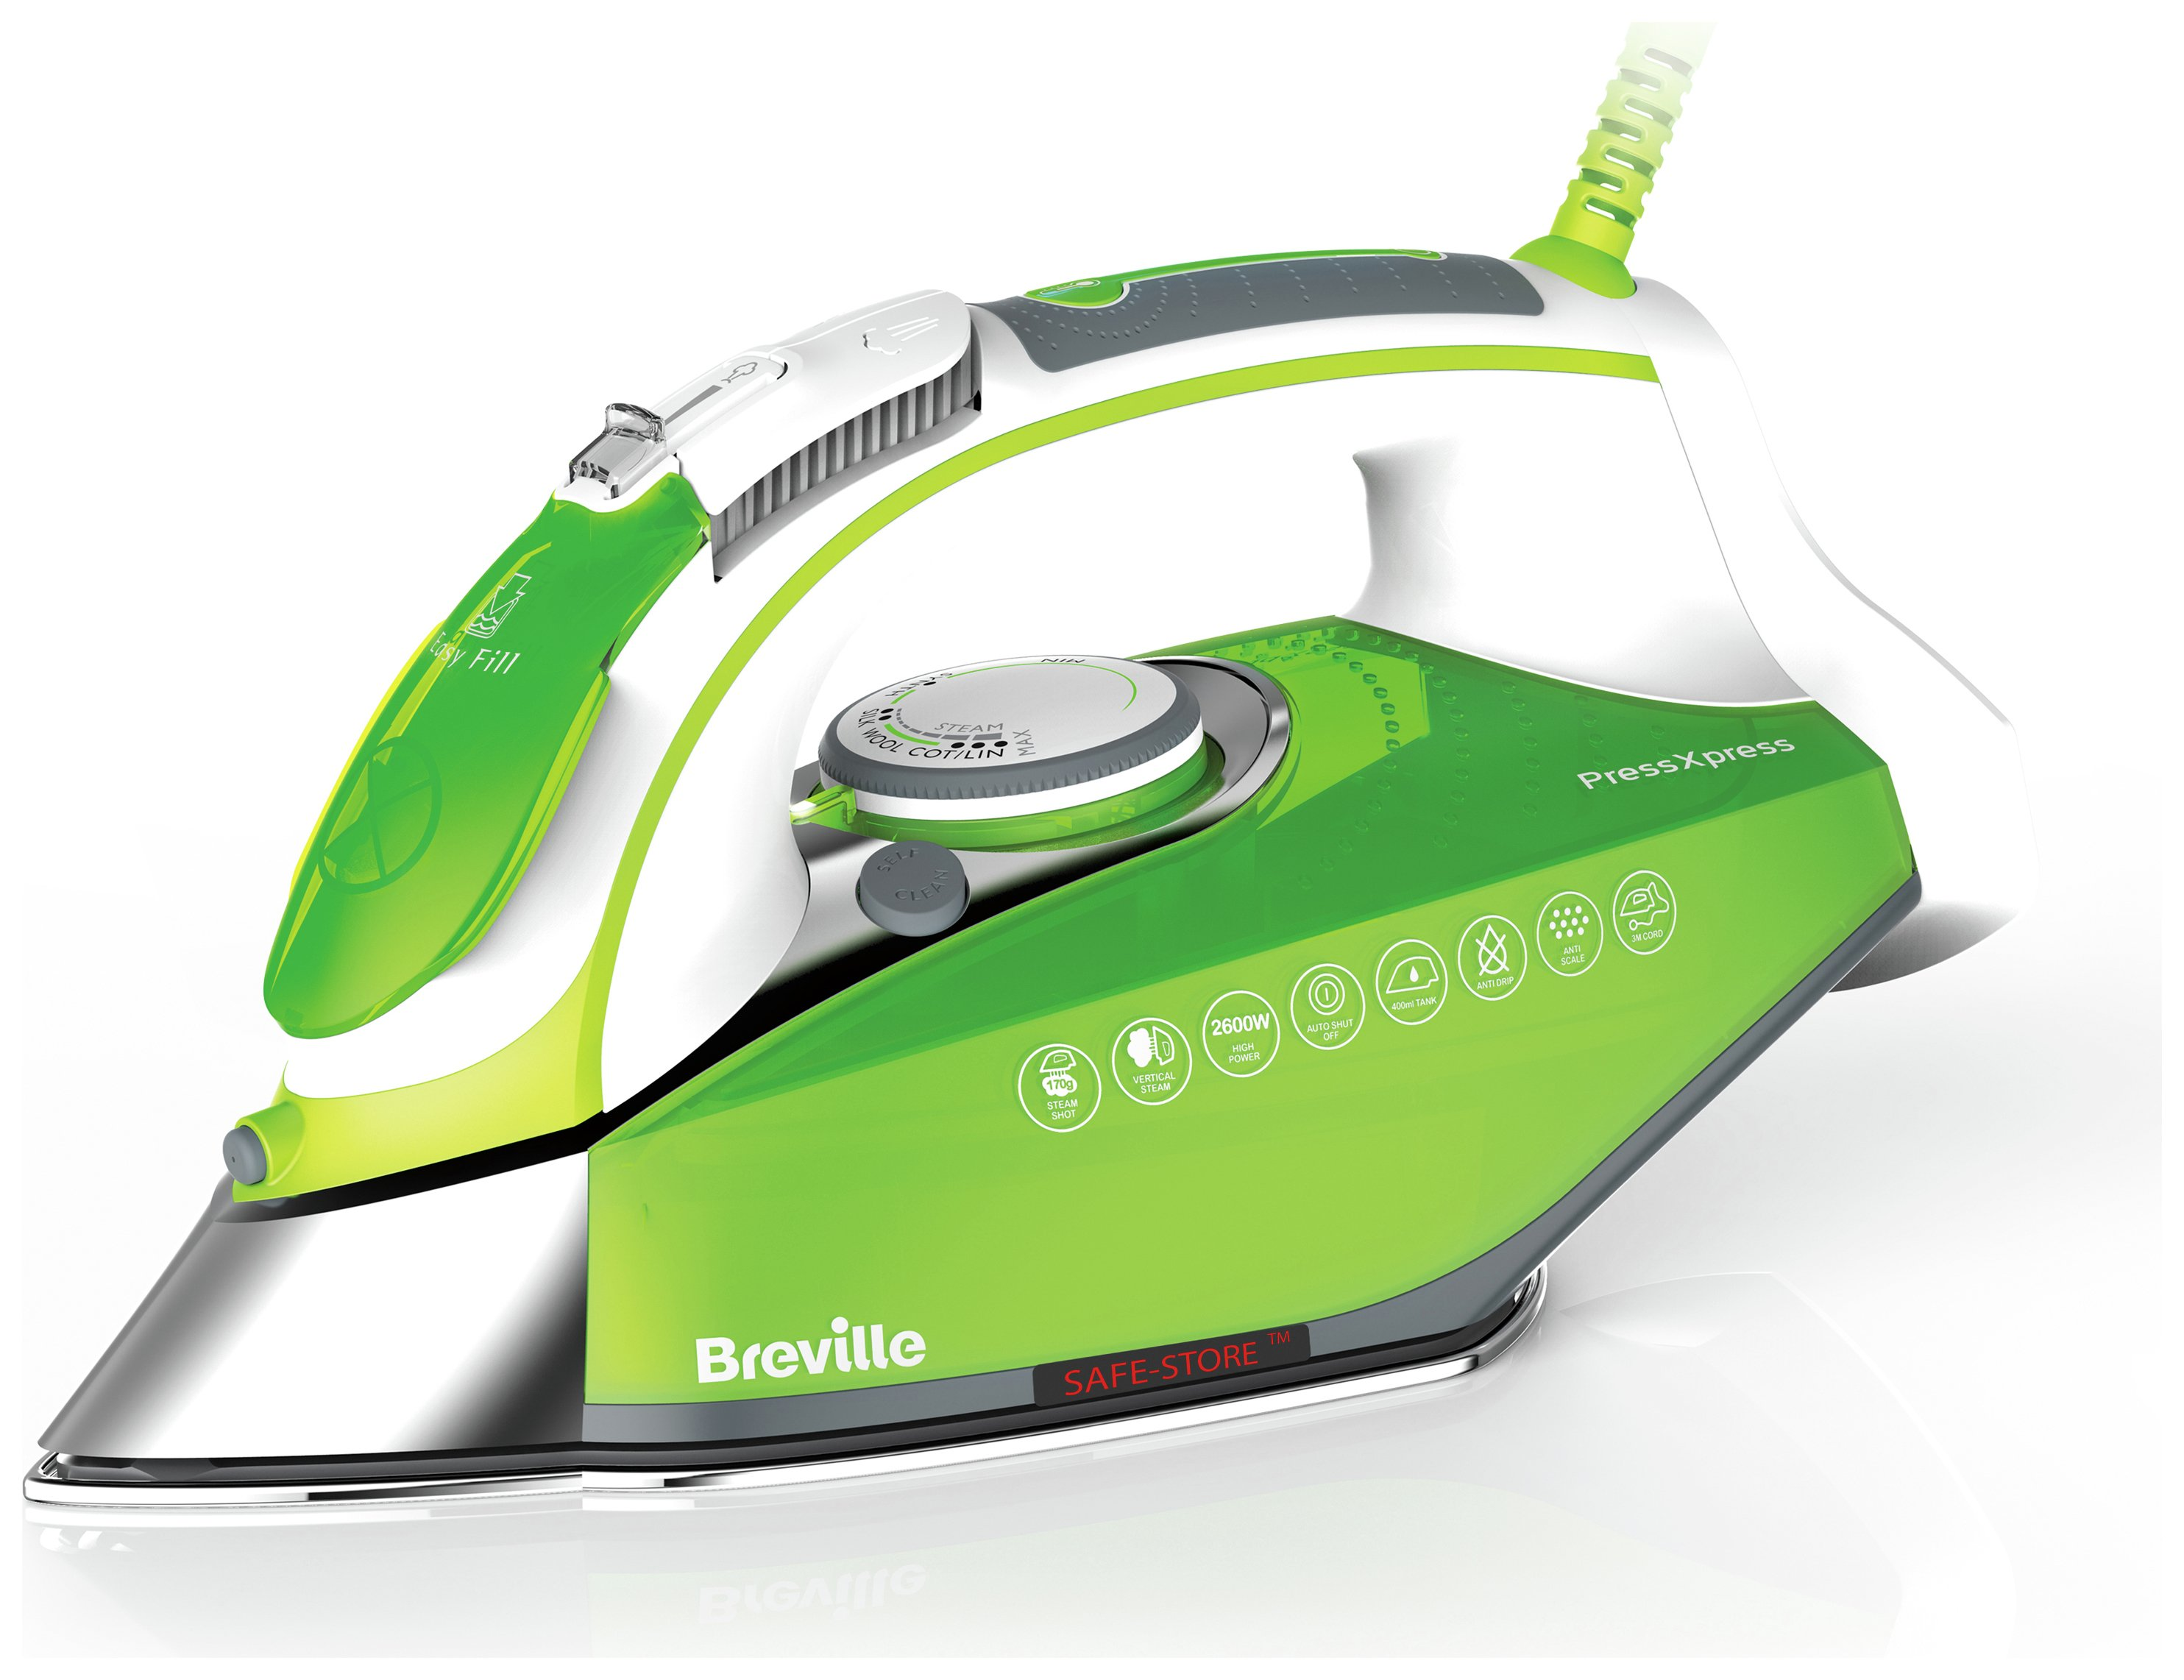 Image of Breville VIN338 PressXpress Steam Iron